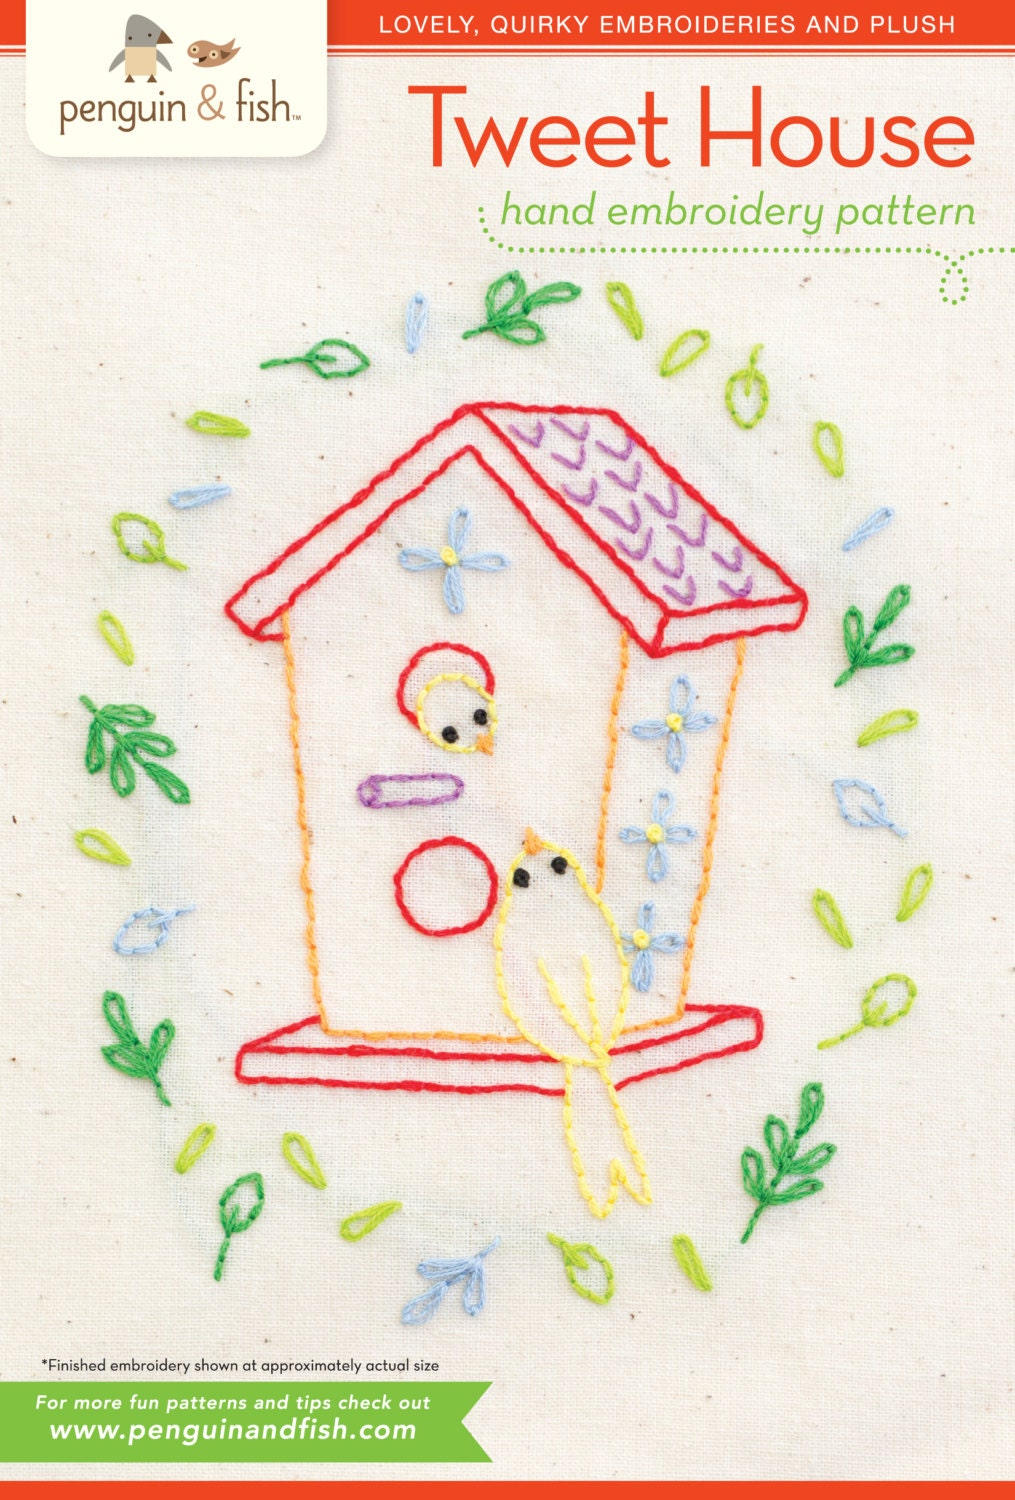 Tweet house hand embroidery pattern with iron on transfer